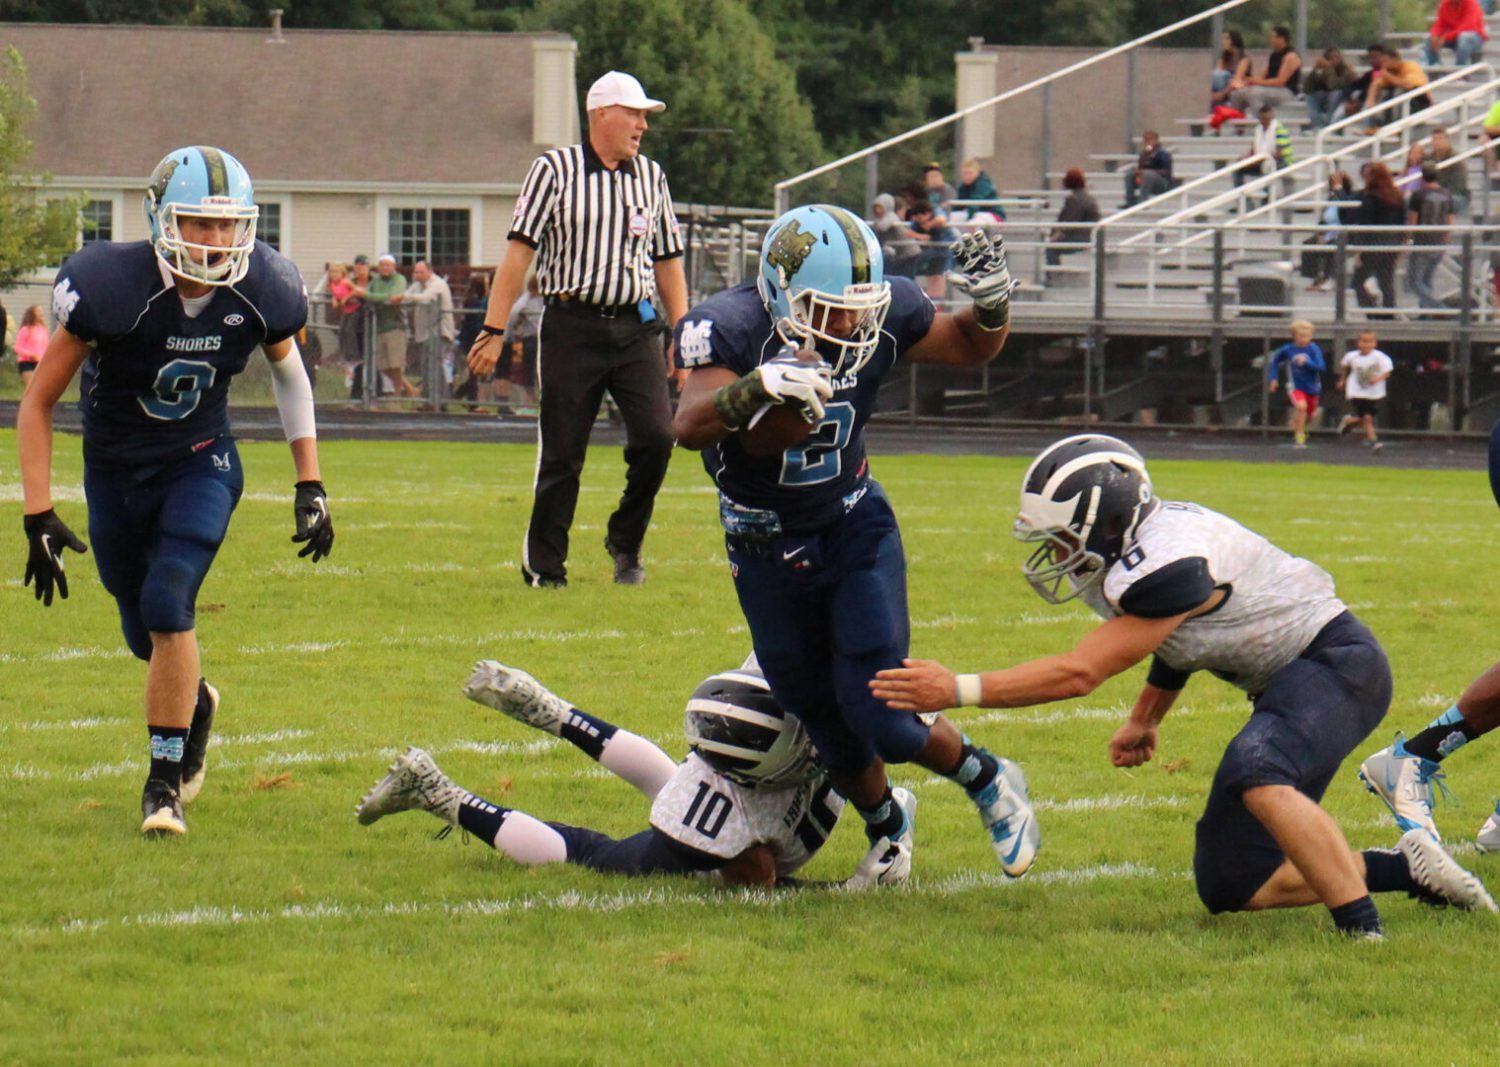 Mona Shores improves to 2-0 with a 48-7 thumping of Fruitport